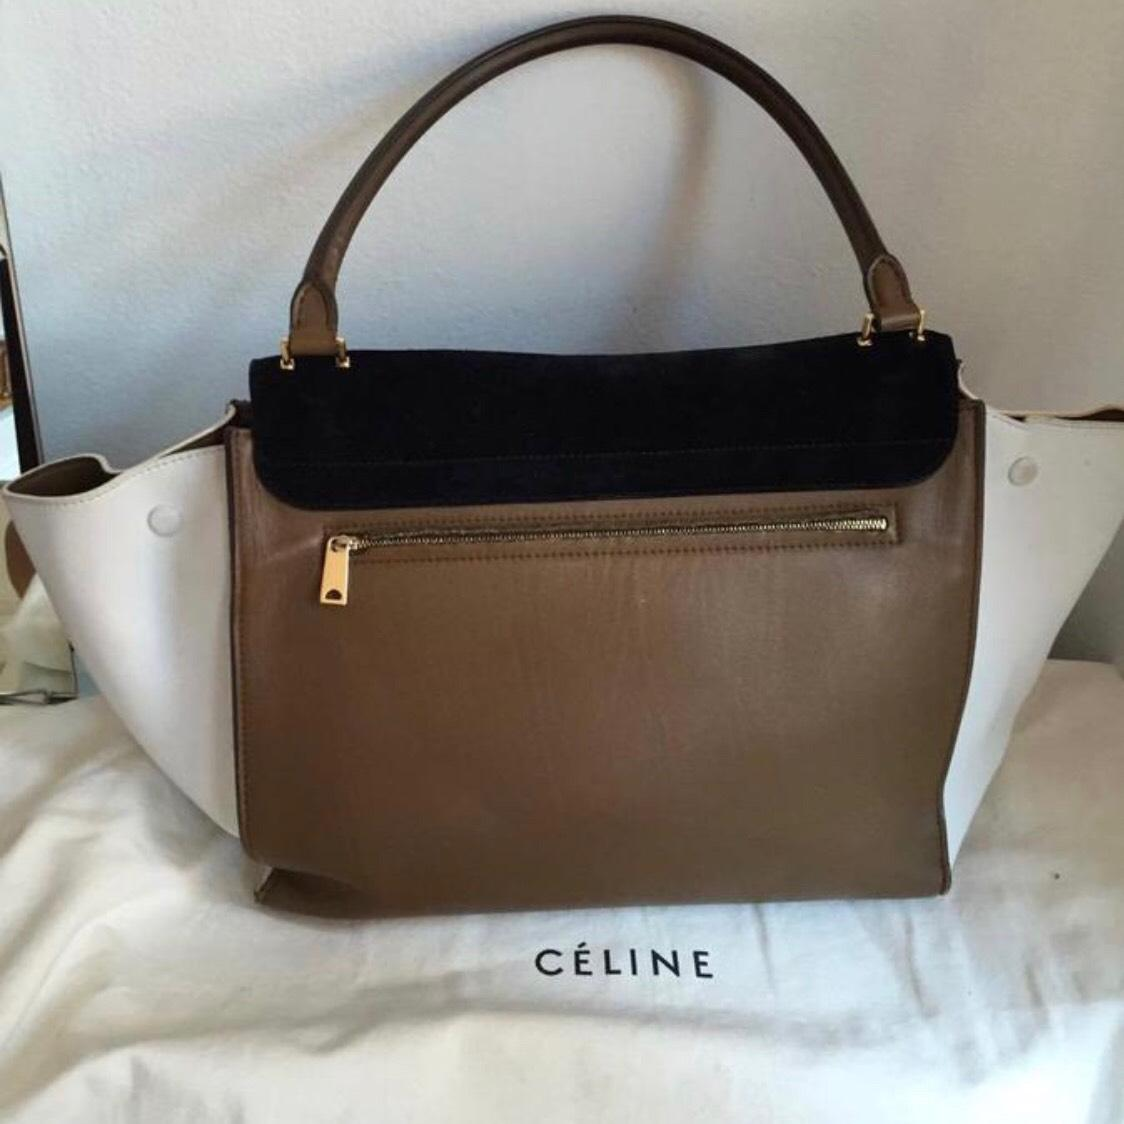 04a201eb92 Celine Hobo Medium Replica handbag prices 2014 celine luggage little  classic celine bag pre owned celine bag,cheap celine handbags celine  handbags spring ...